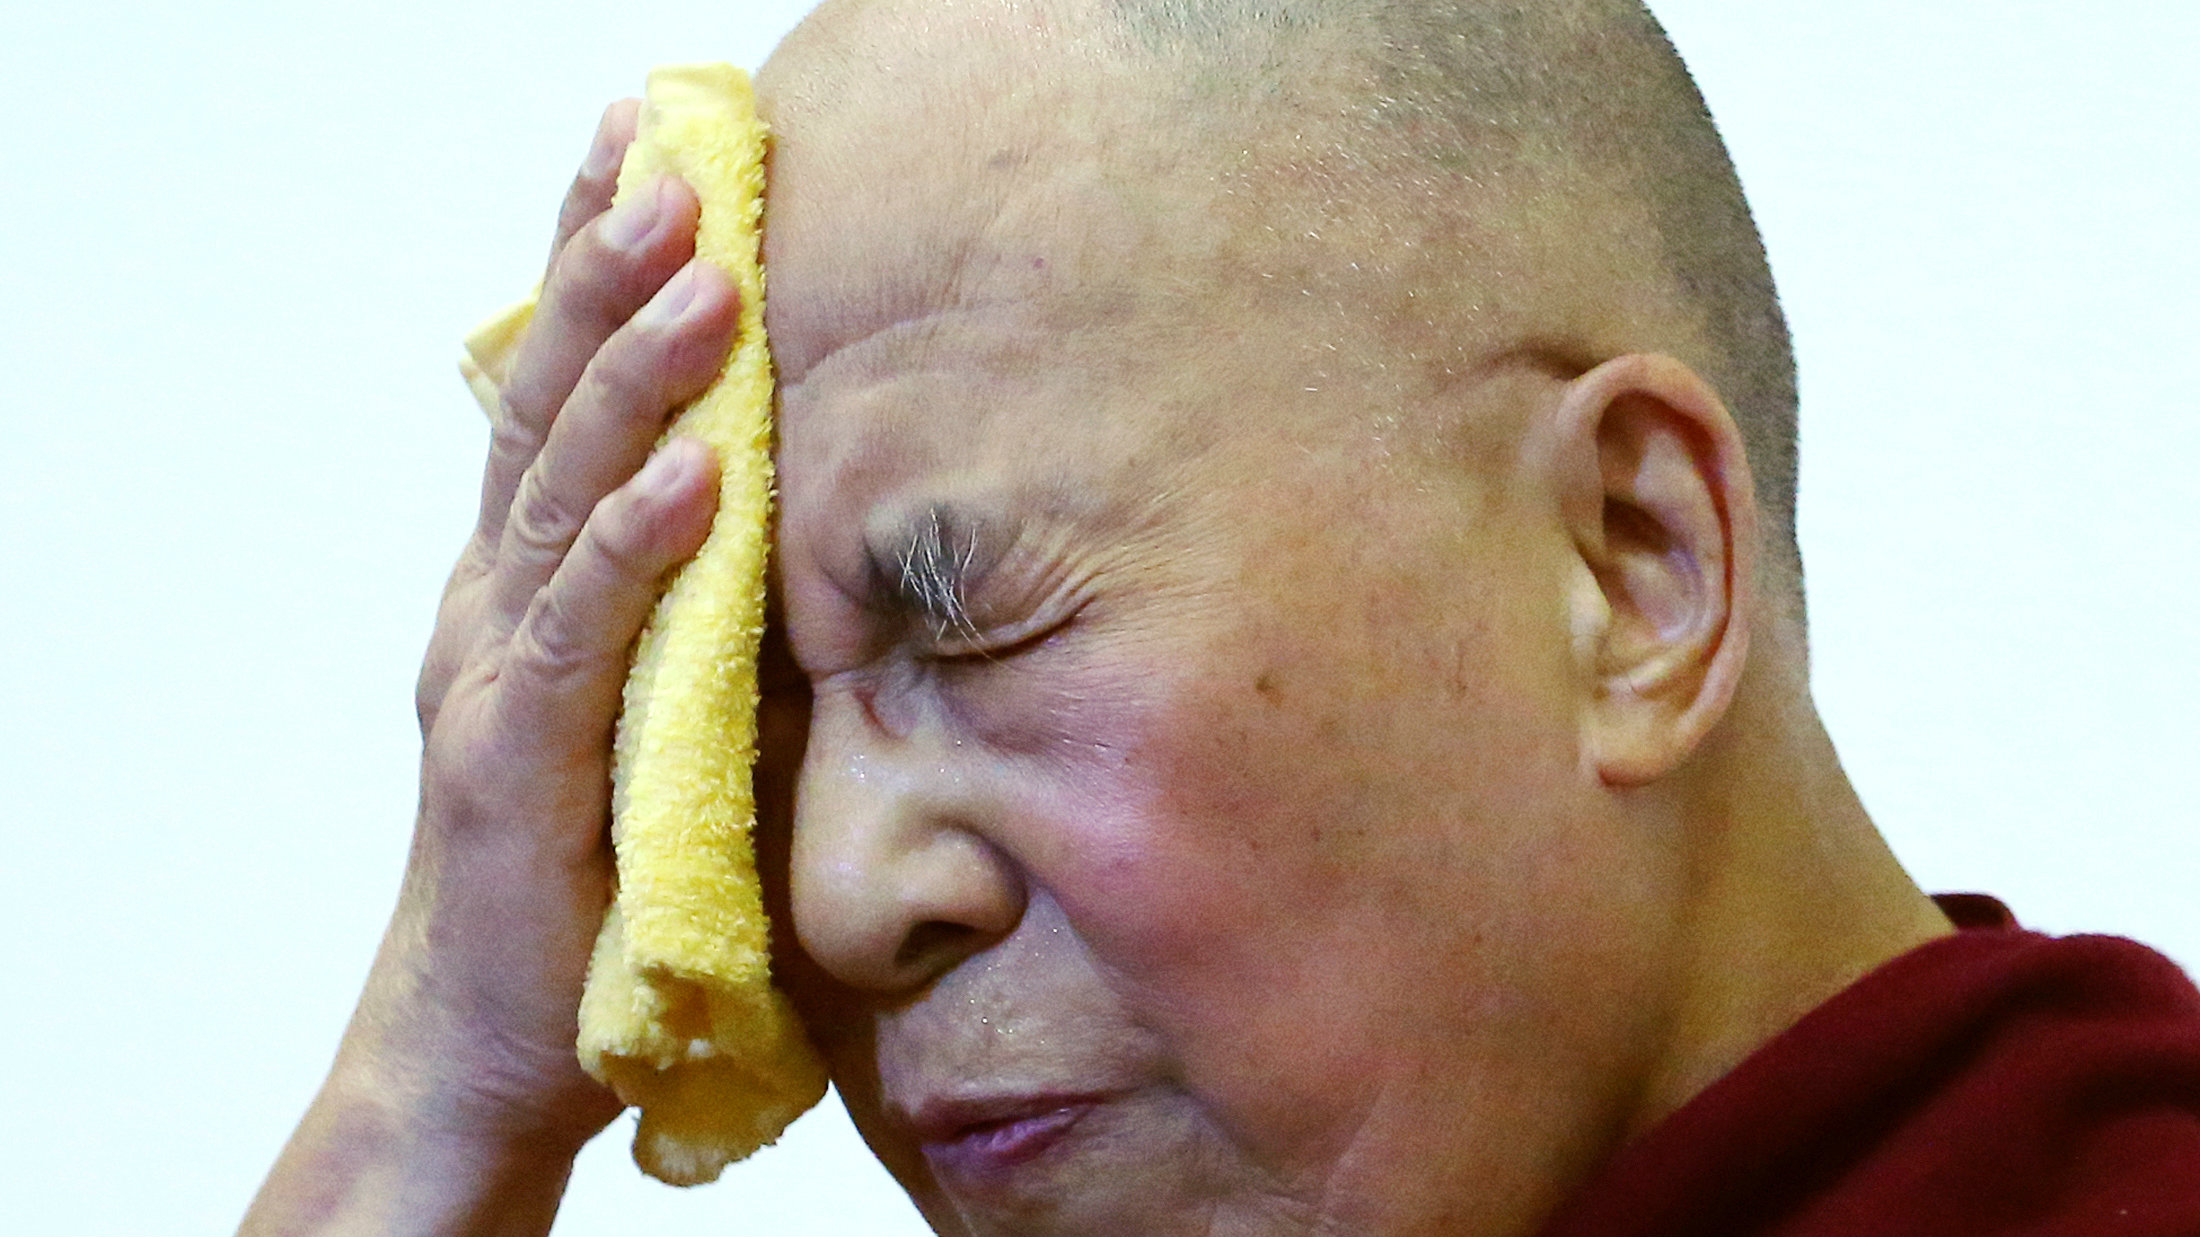 Tibet's exiled spiritual leader the Dalai Lama wipes his face during an international conference of Tibet support groups in Brussels, Belgium, September 8, 2016.